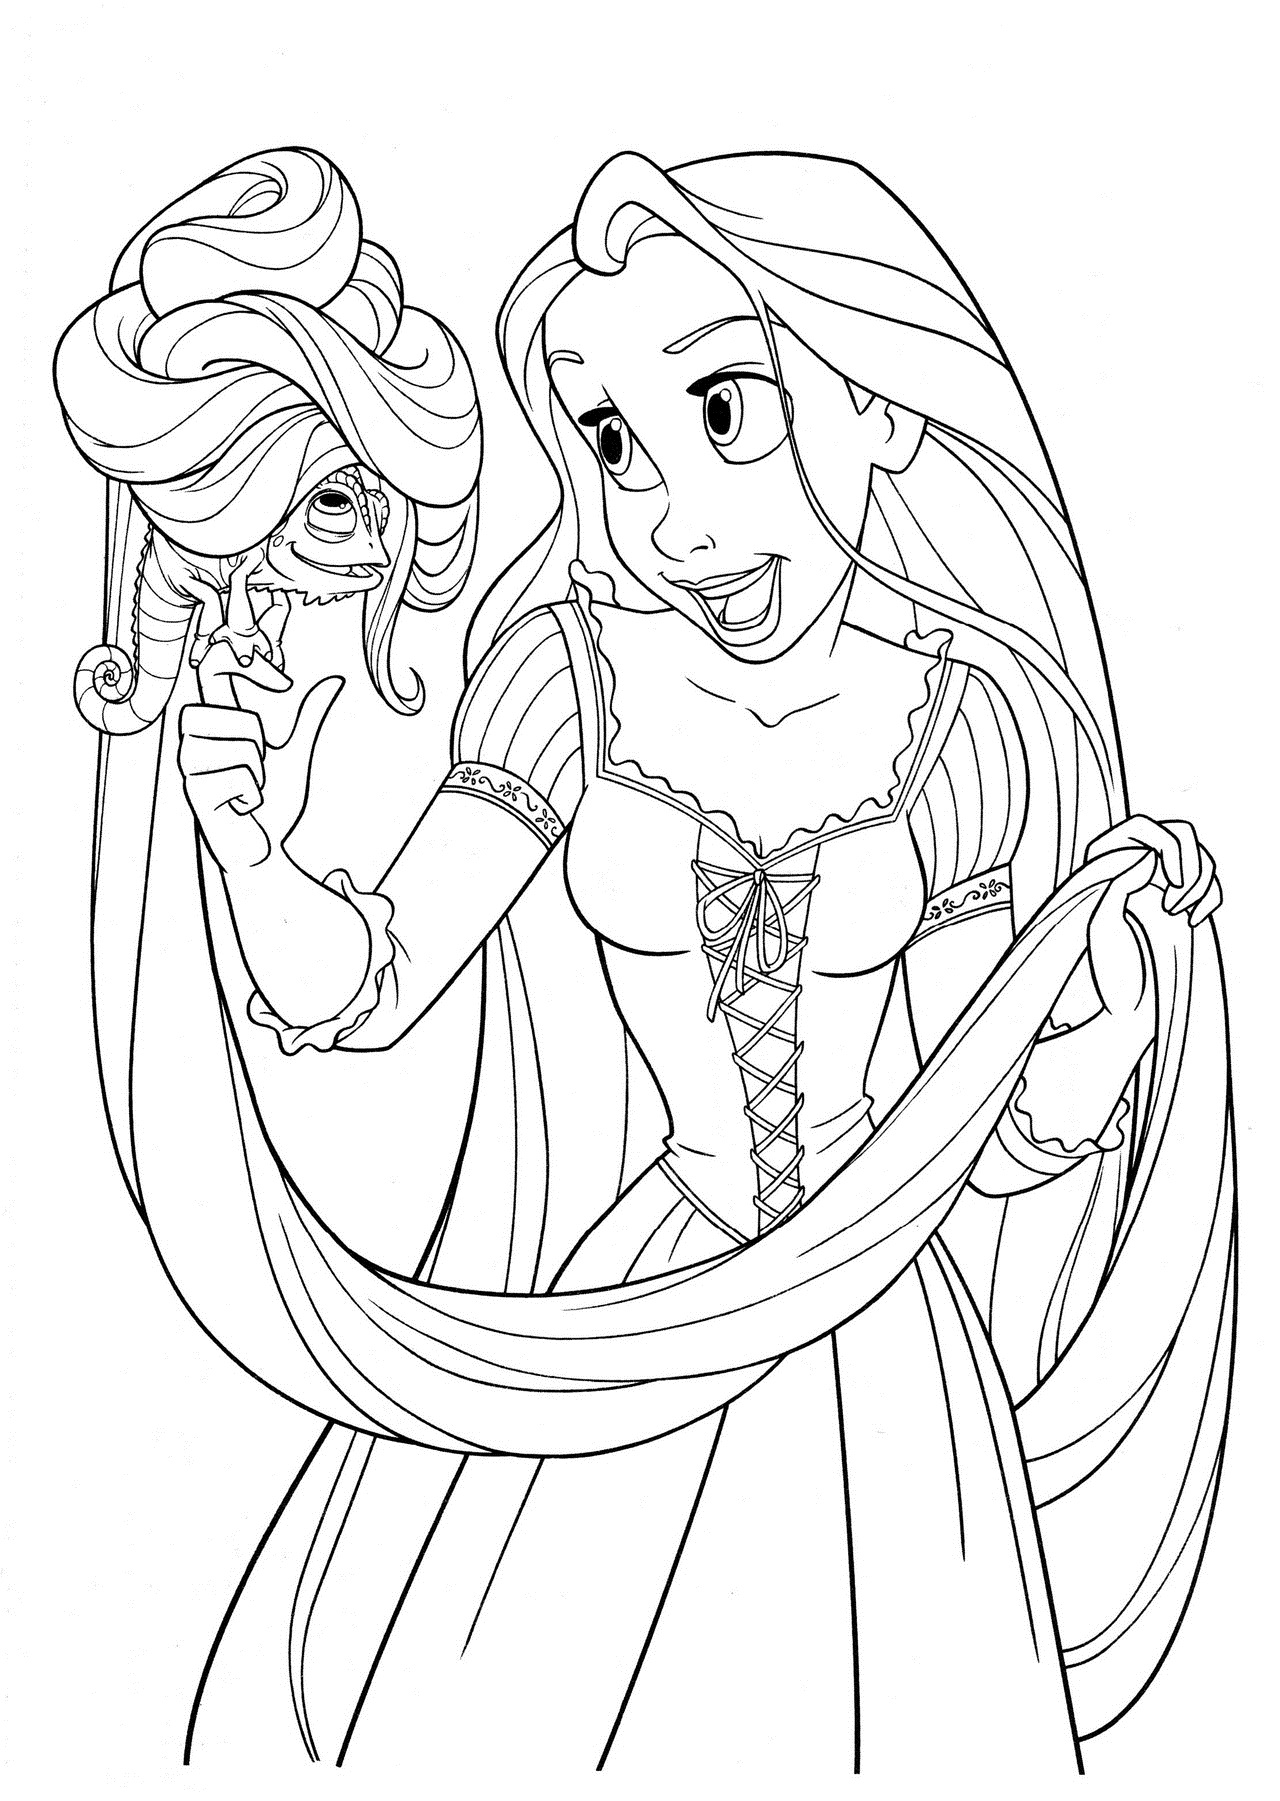 coloring pages free online - photo#30